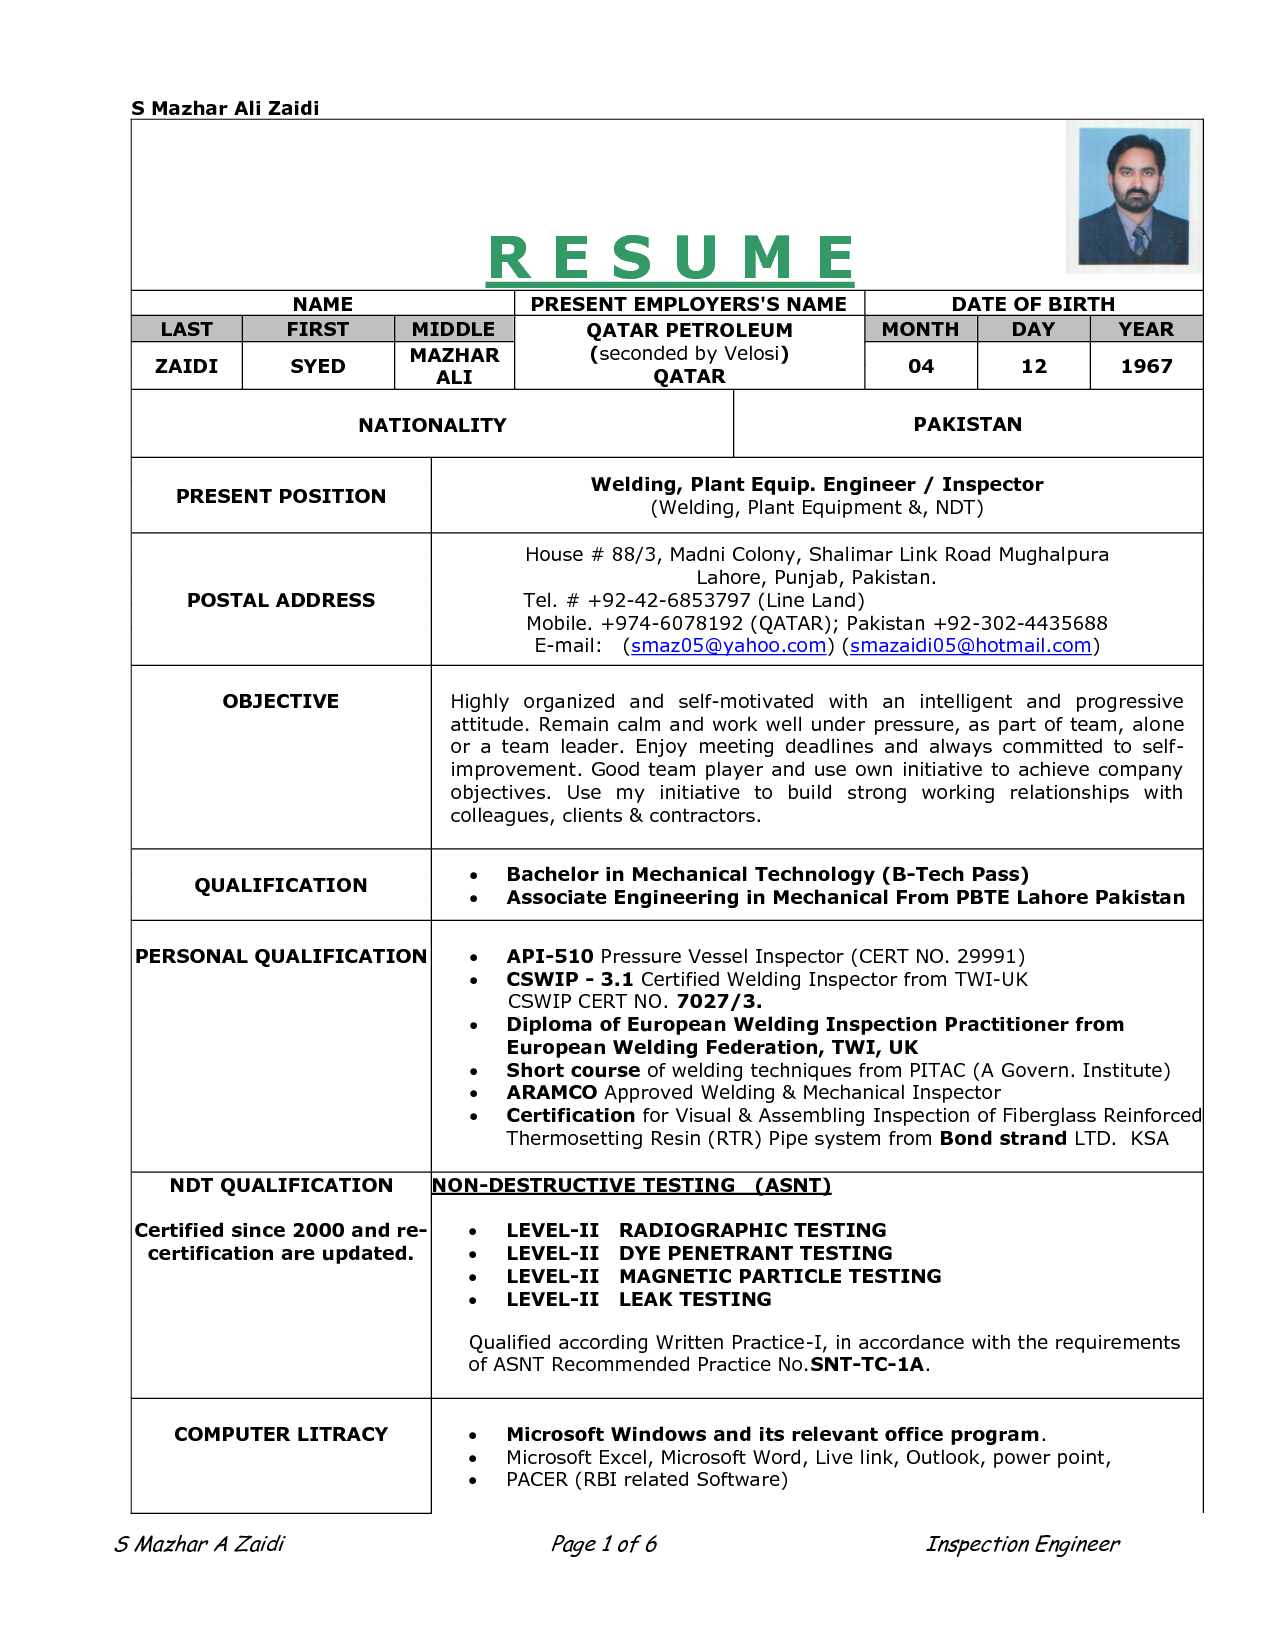 Resume Re Isla Nuevodiario Co